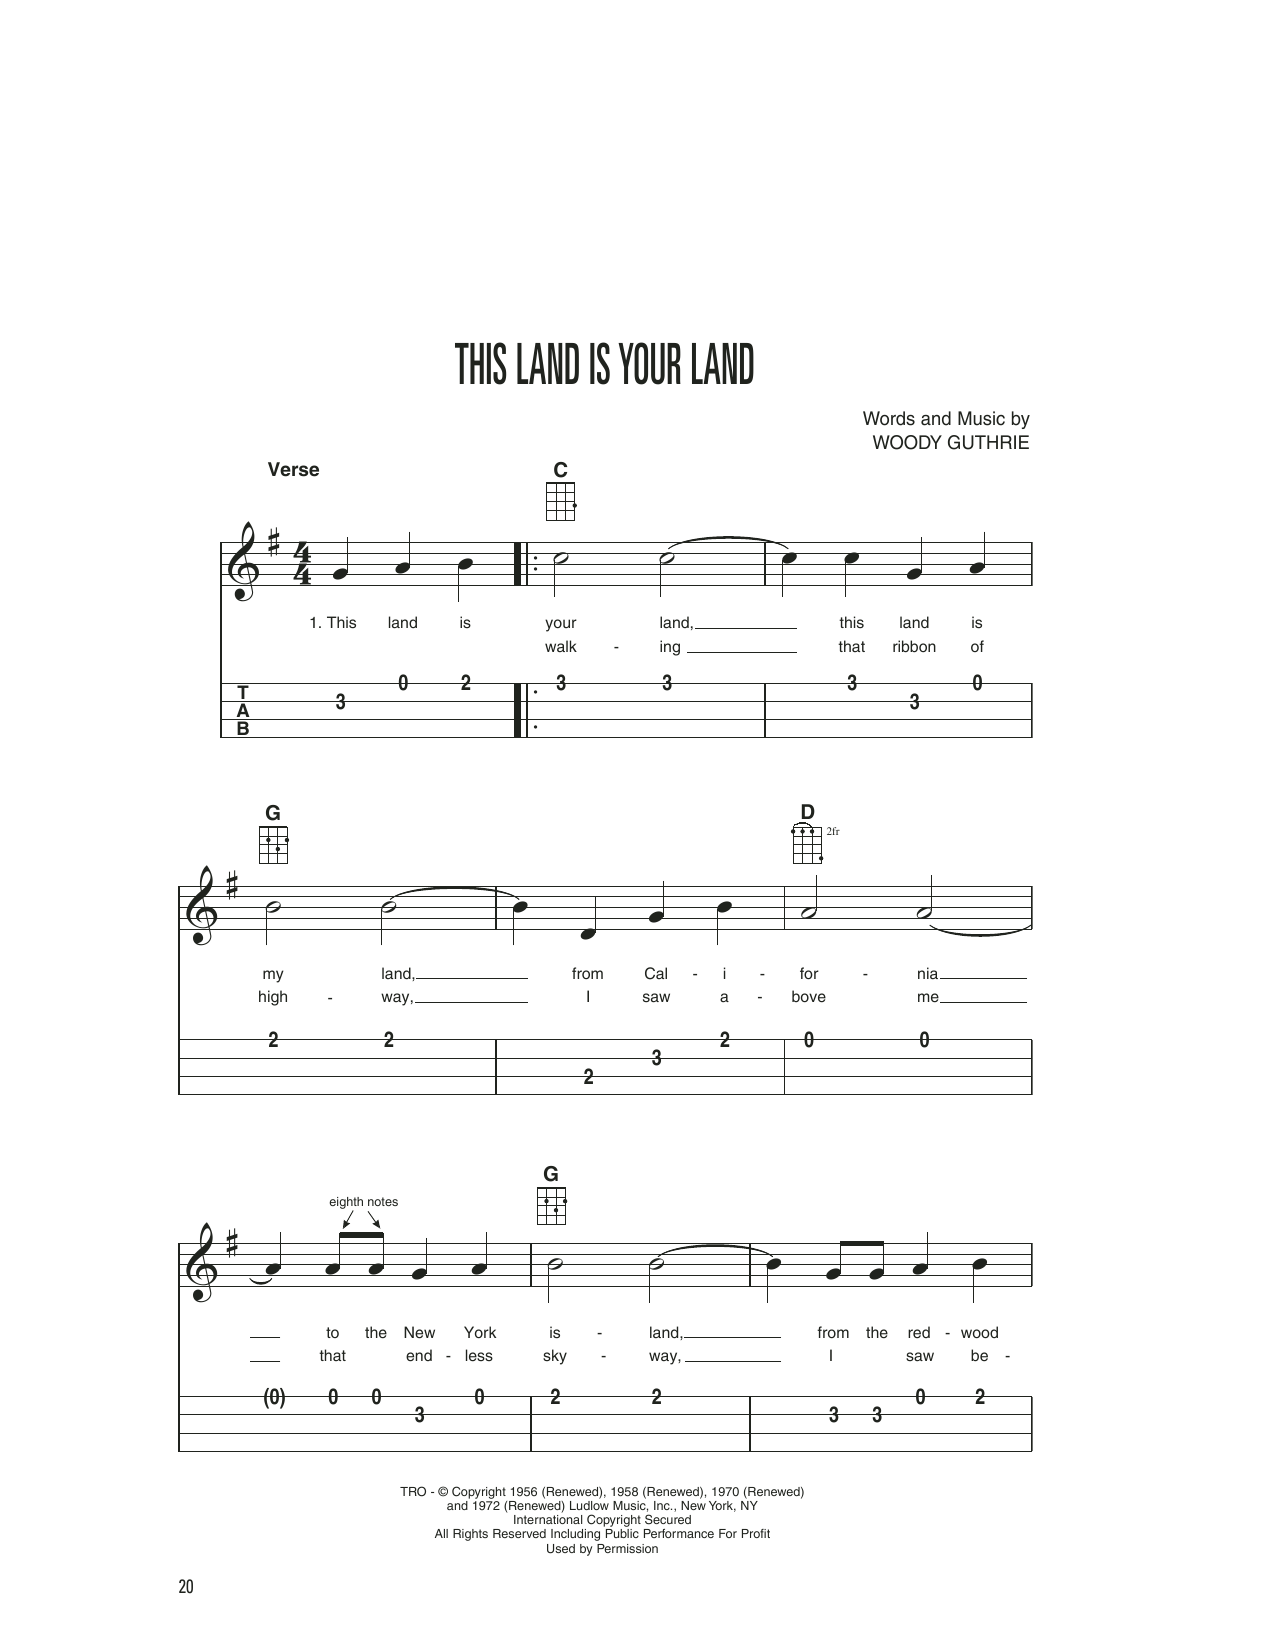 Woody & Arlo Guthrie This Land Is Your Land sheet music notes printable PDF score